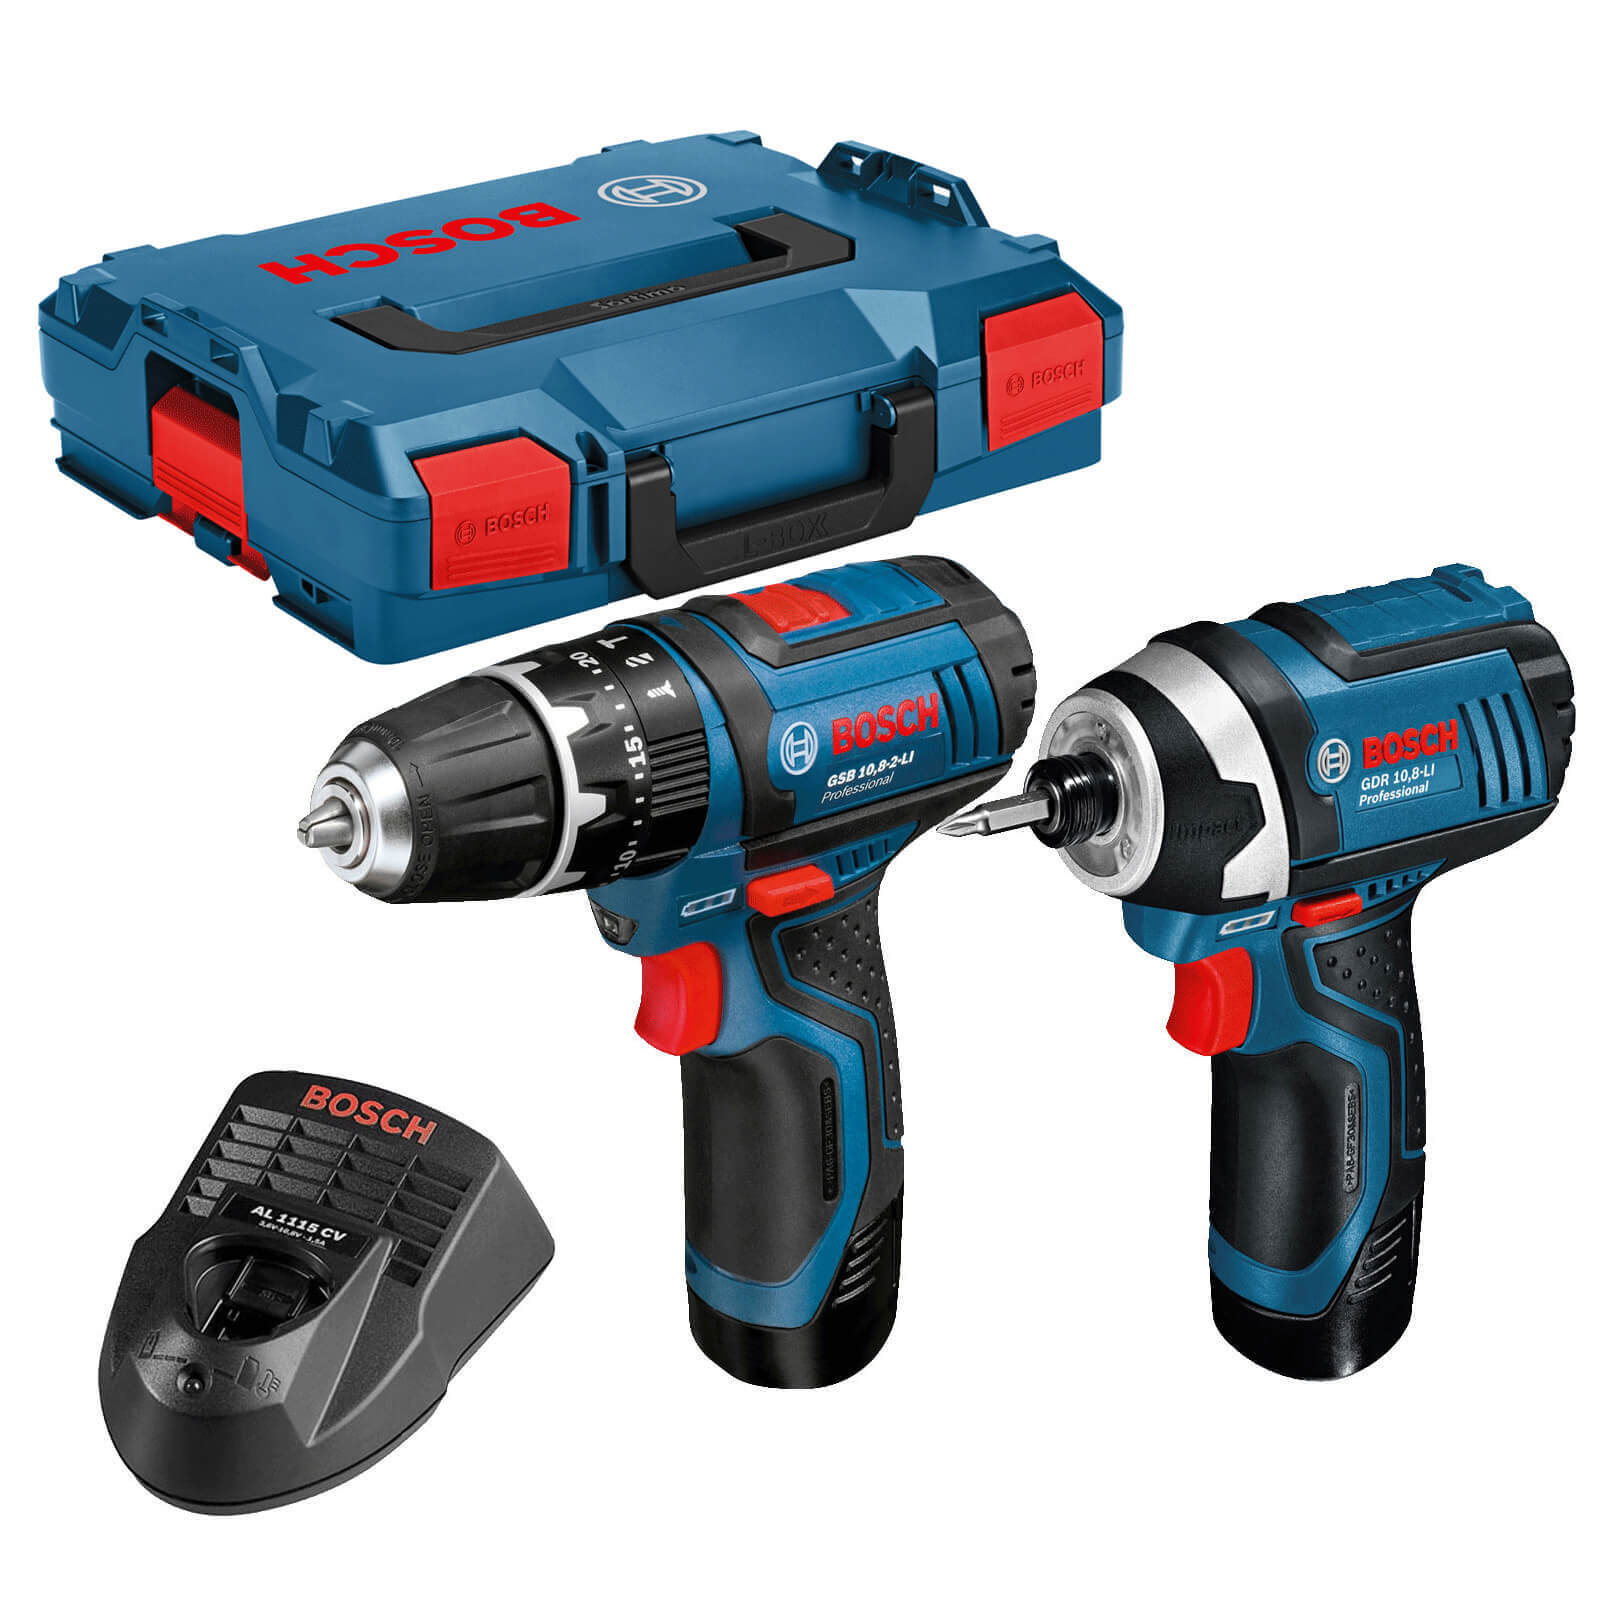 Bosch 12V Cordless Combi Drill & Impact Driver 2 x 2ah Liion Charger Case